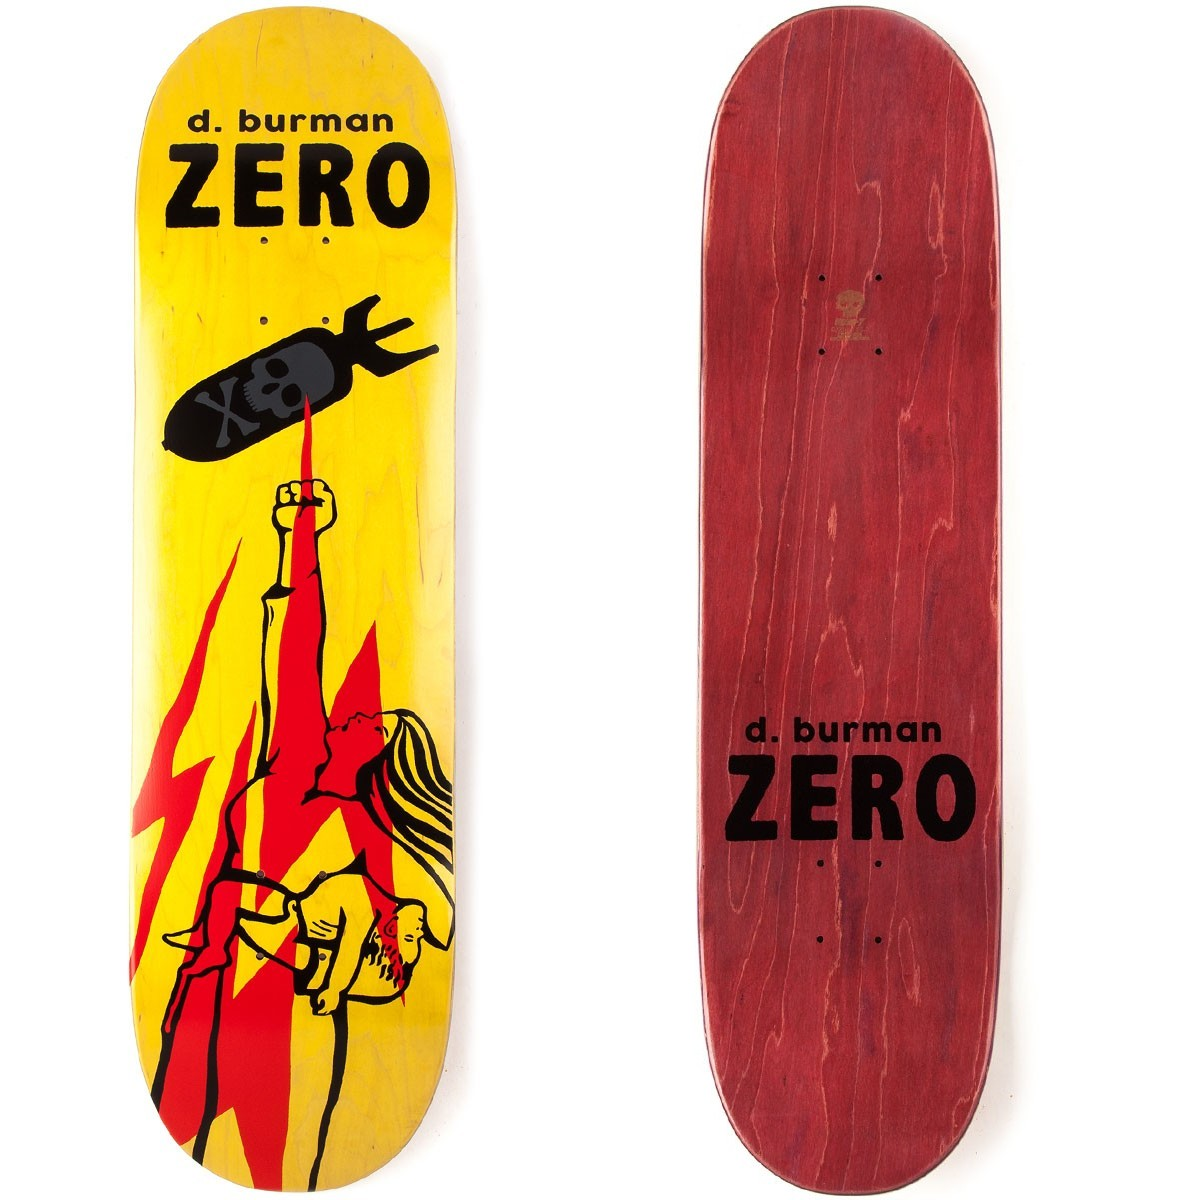 Zero Skateboard Deck Dane Burman 8.625 Propaganda R7 FREE POST and GRIP New